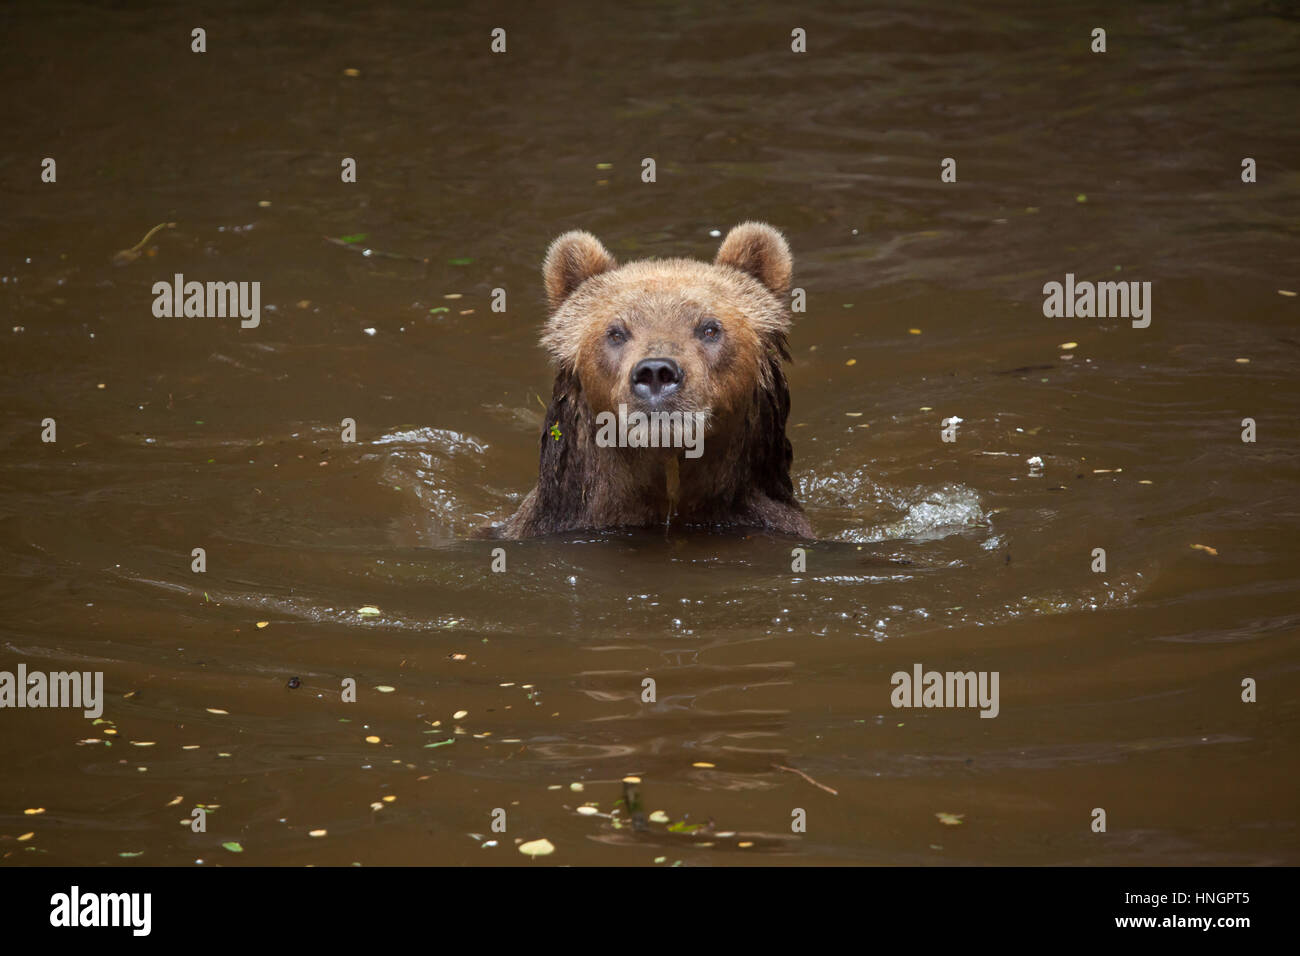 Kamchatka brown bear (Ursus arctos beringianus), also known as the Far Eastern brown bear swimming at La Fleche - Stock Image